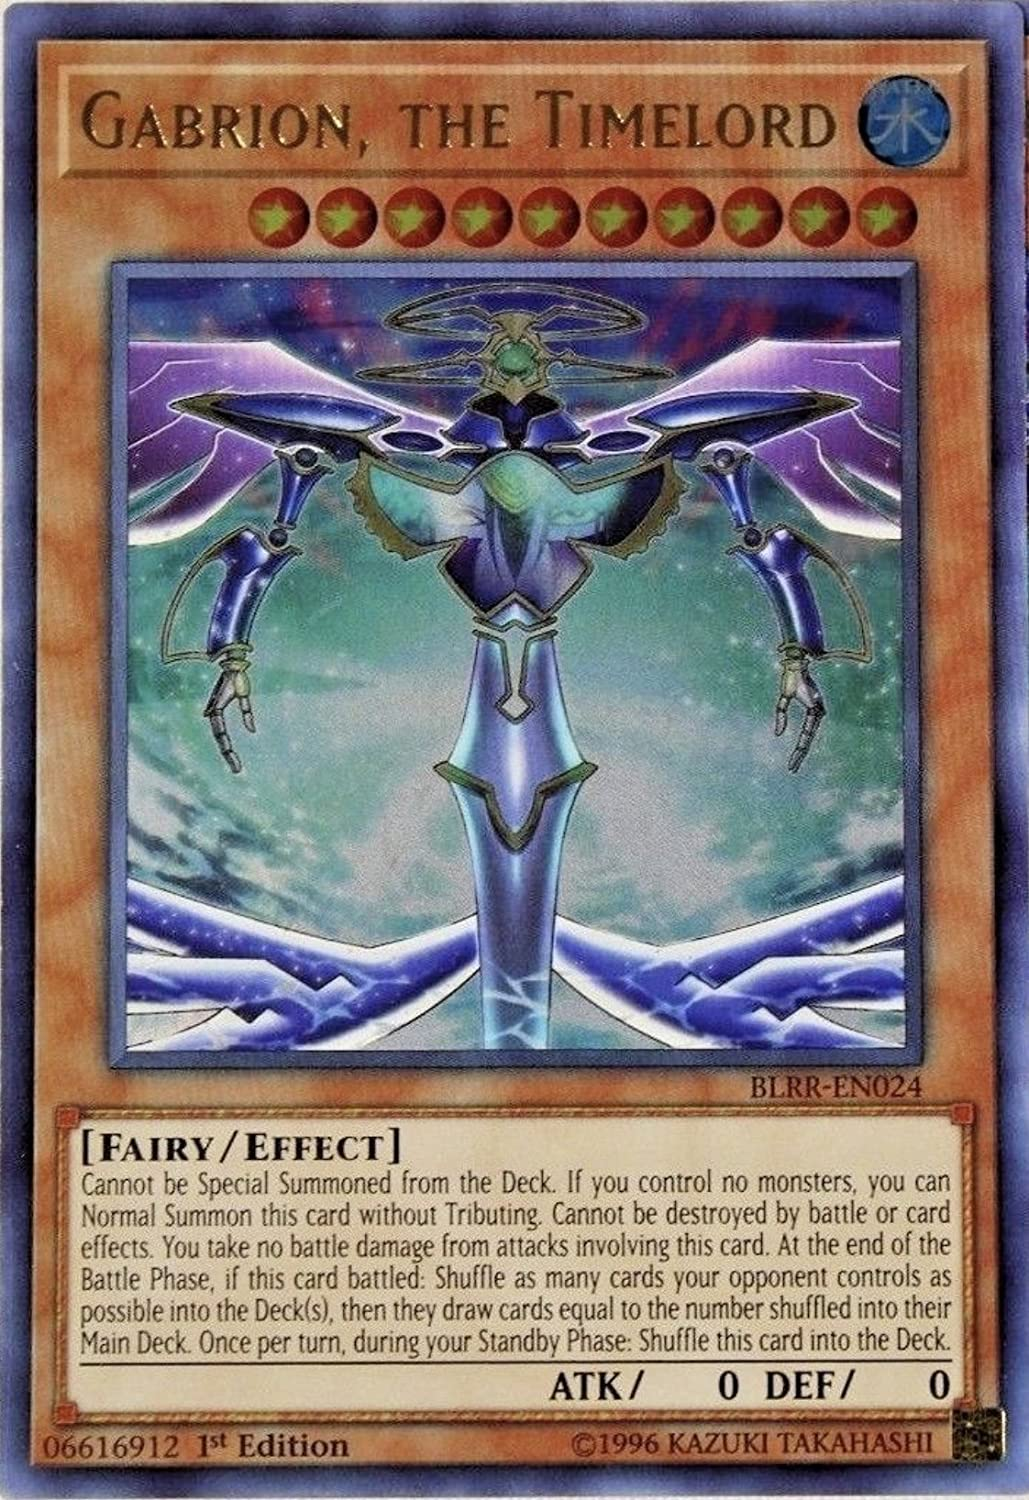 BLRR-EN056 Ultra Rare the Ultimate Timelord Yugioh 1st Edition Sephylon